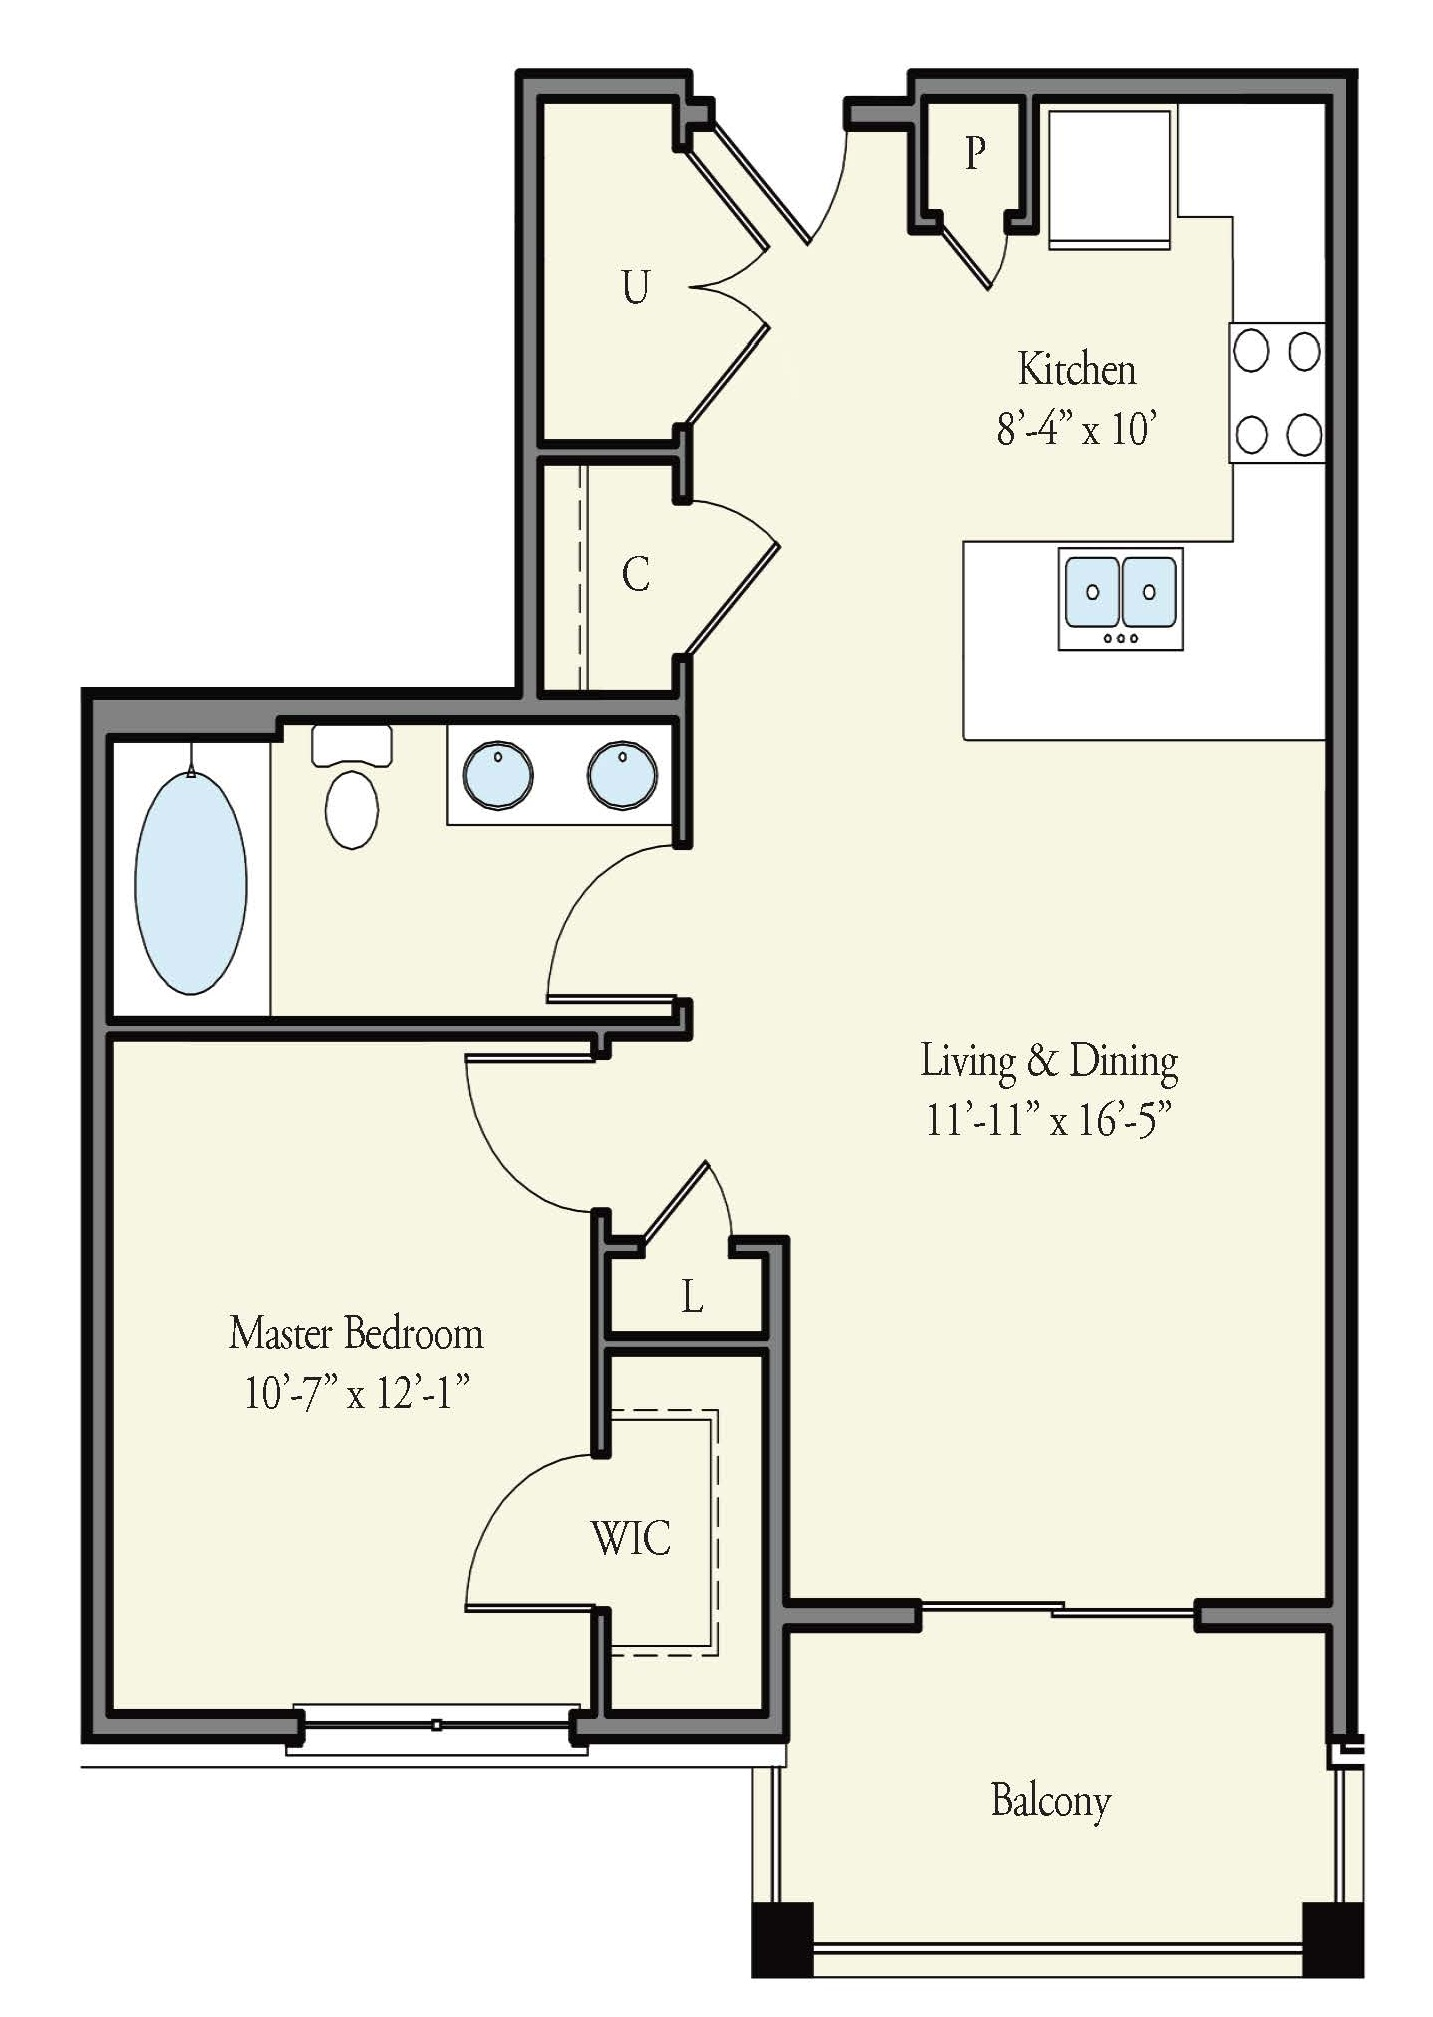 Floorplan - Stirling image